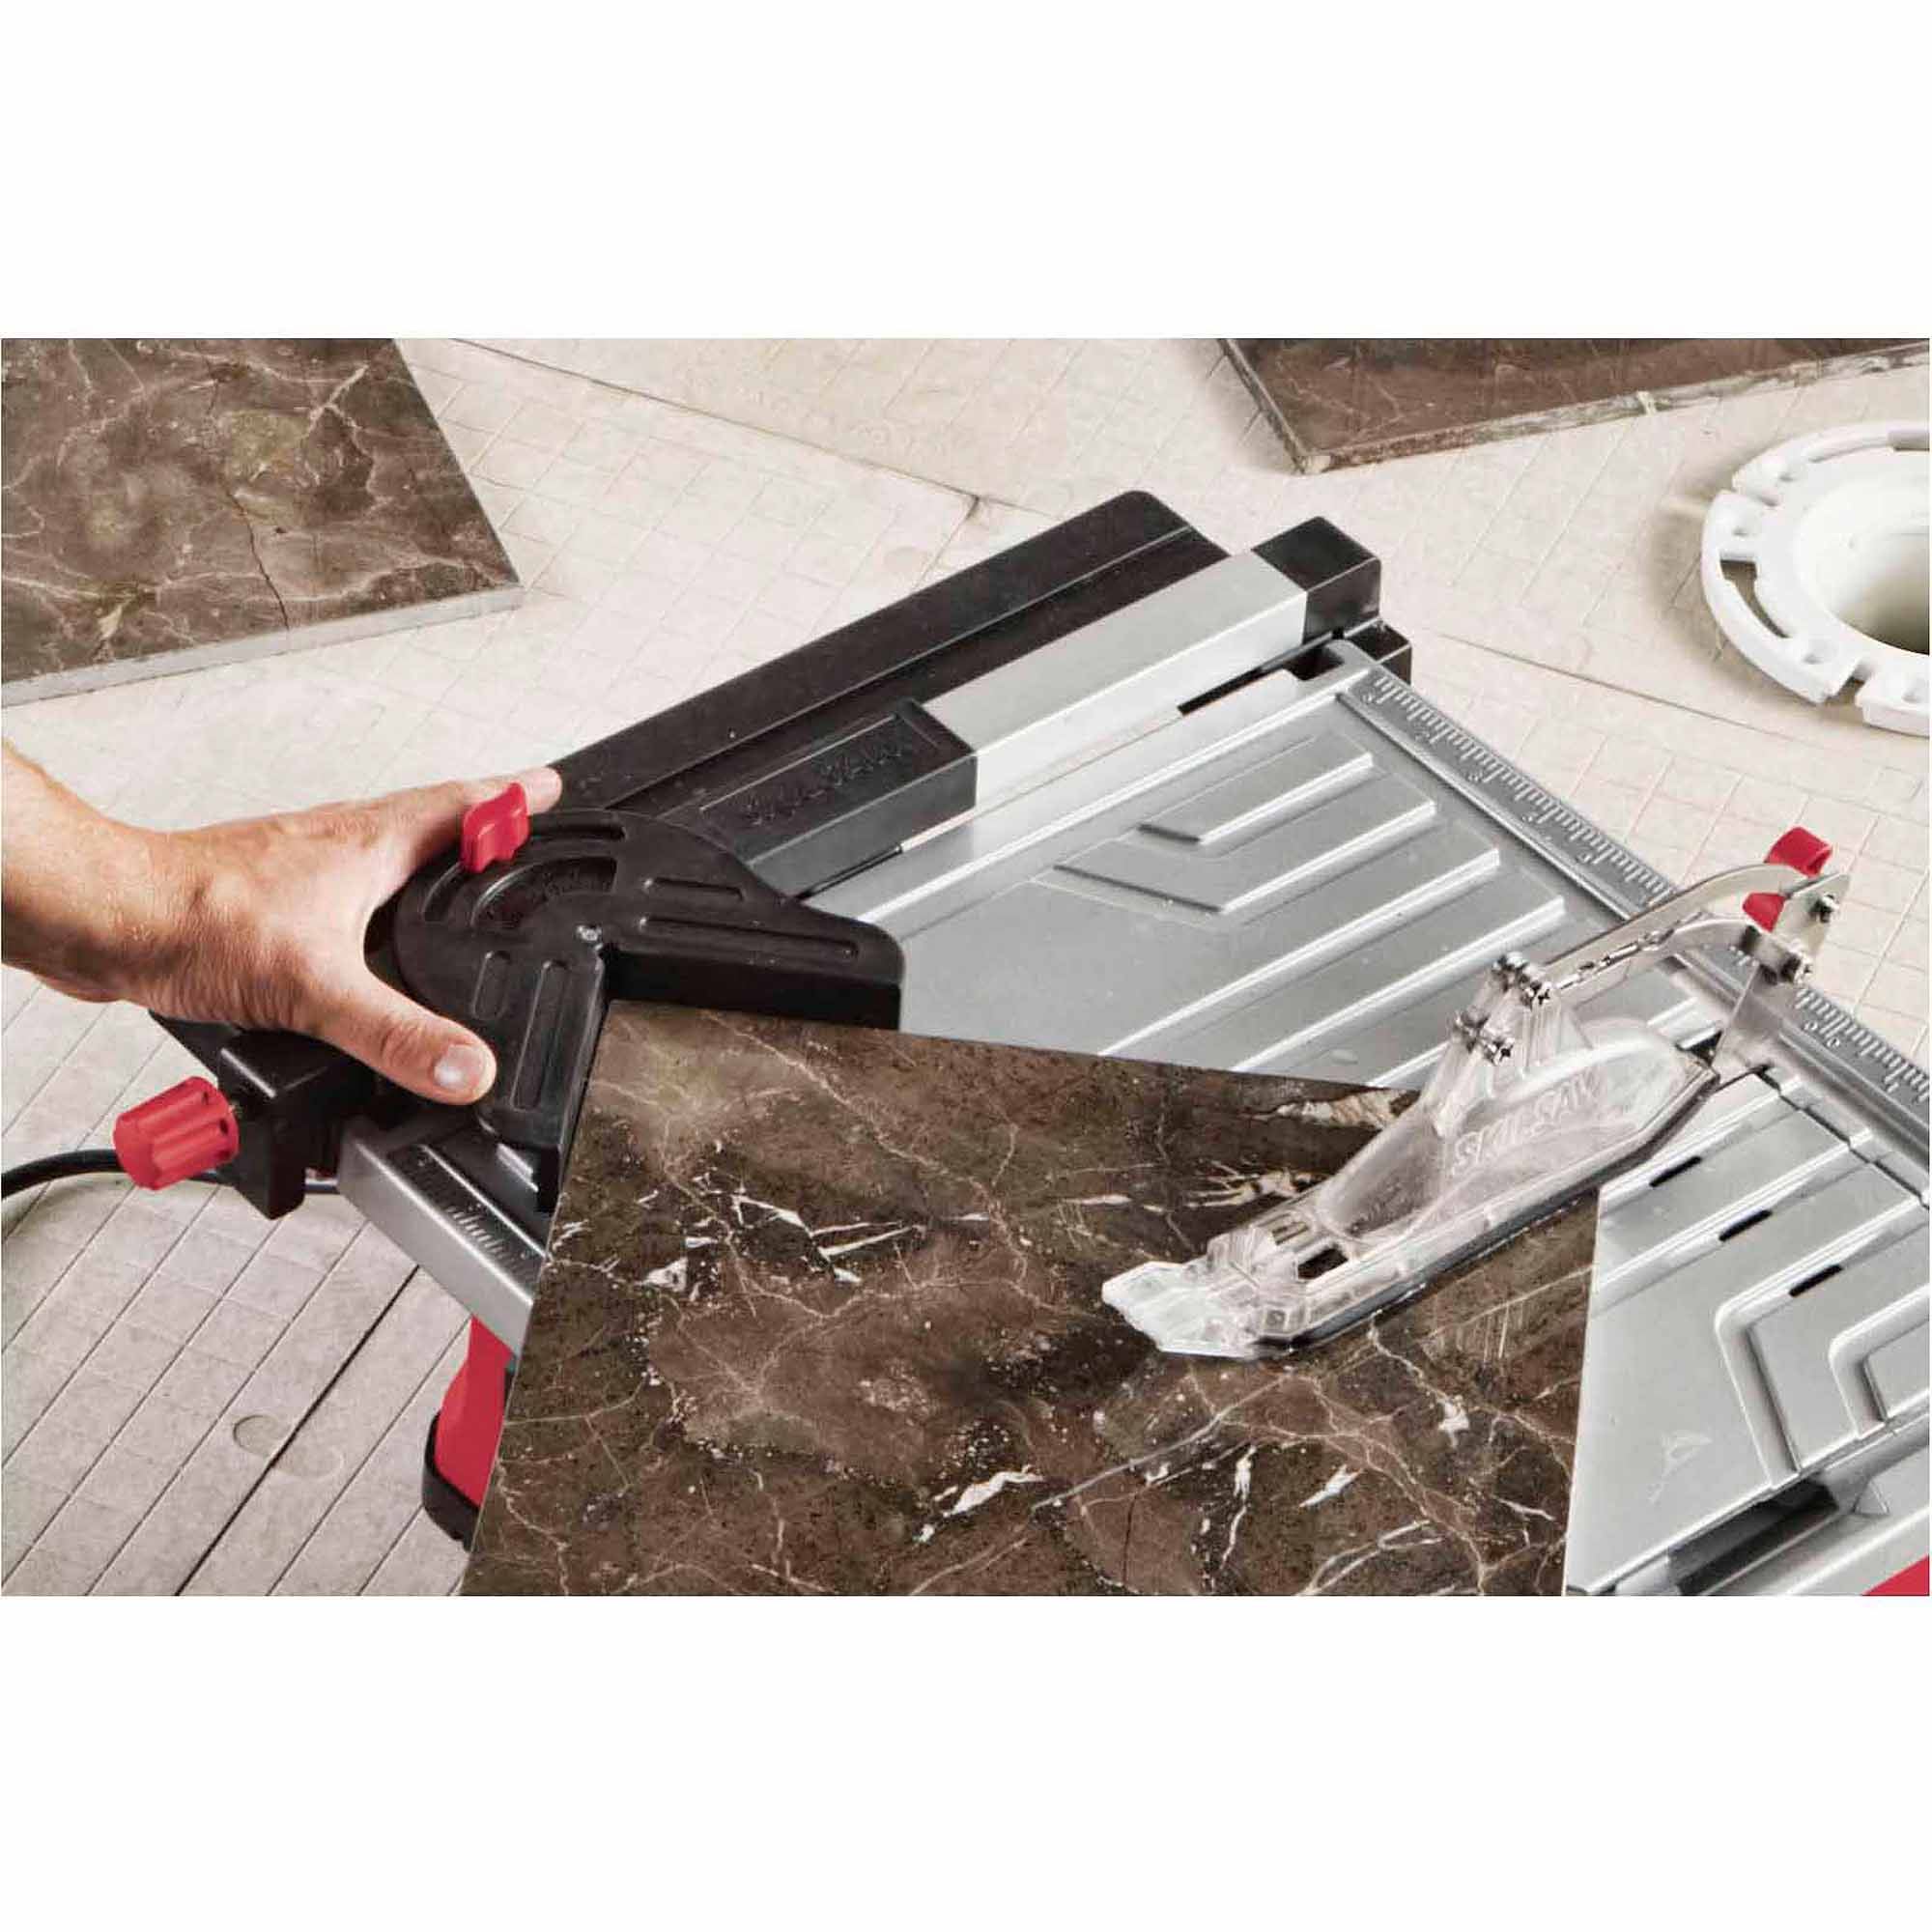 "Skil 3550-02 7"" Wet Tile Saw with HydroLock System"